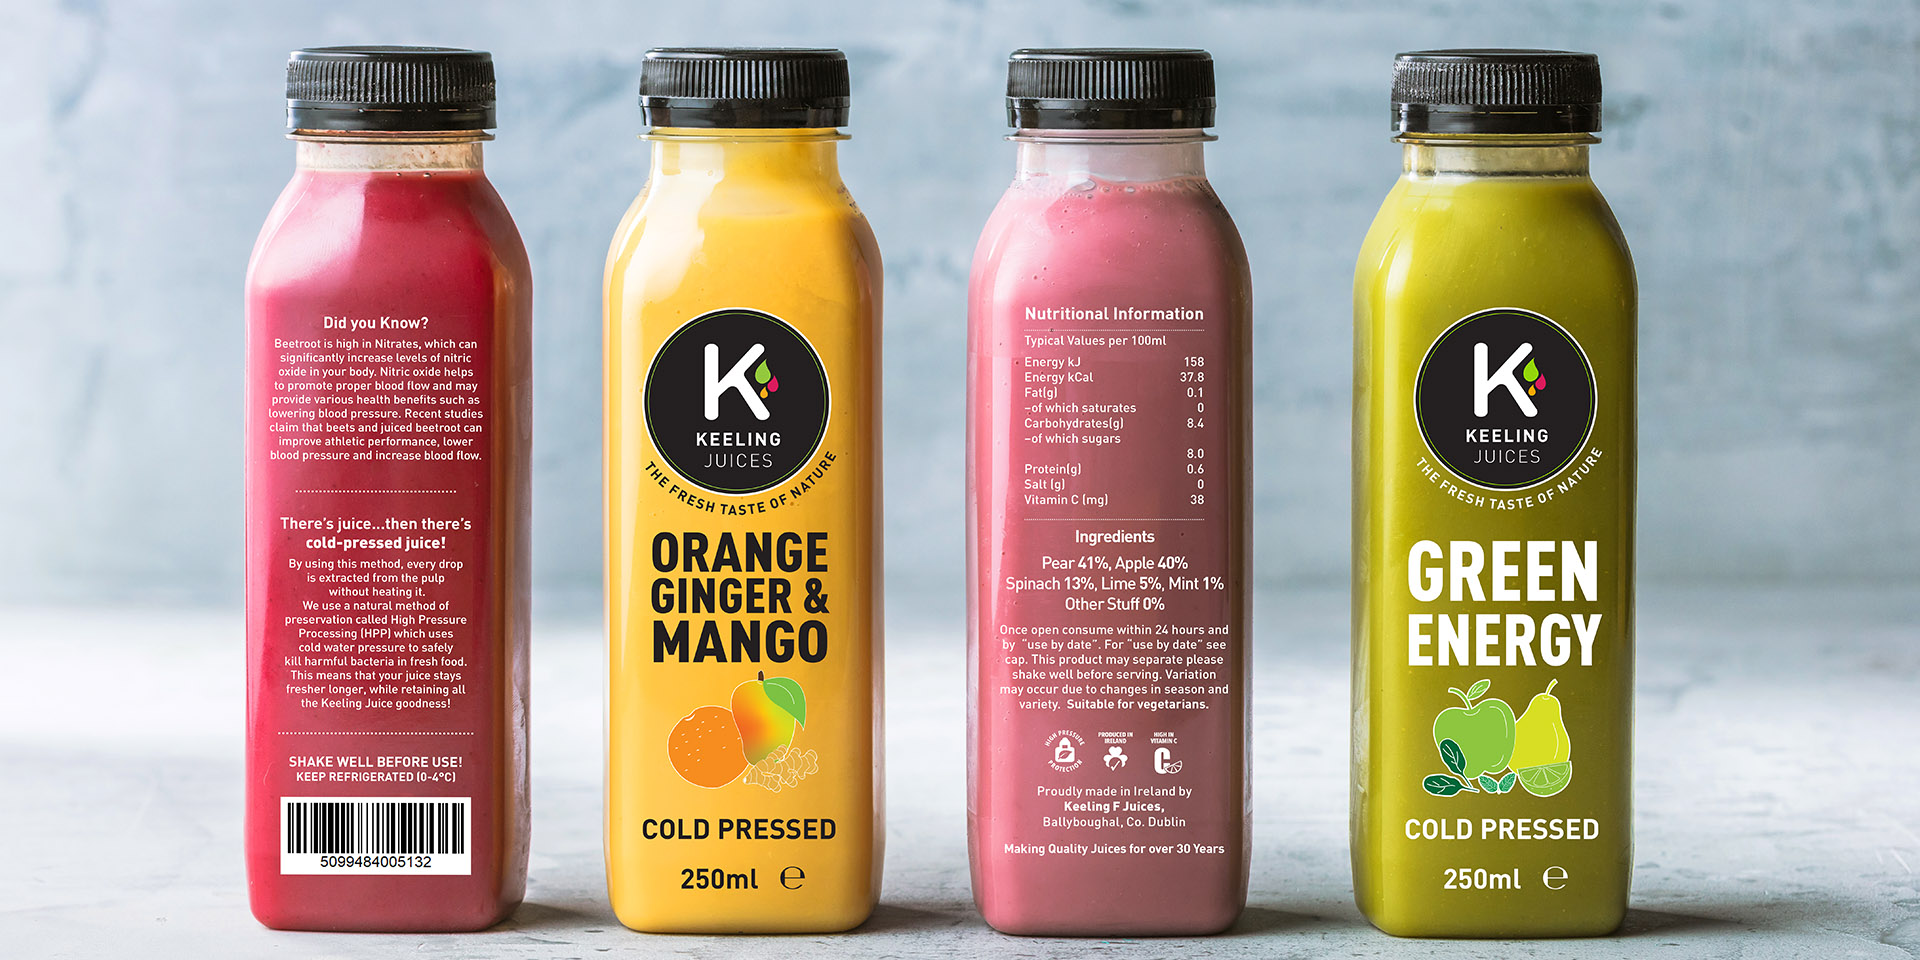 Keeling Juices Product Design